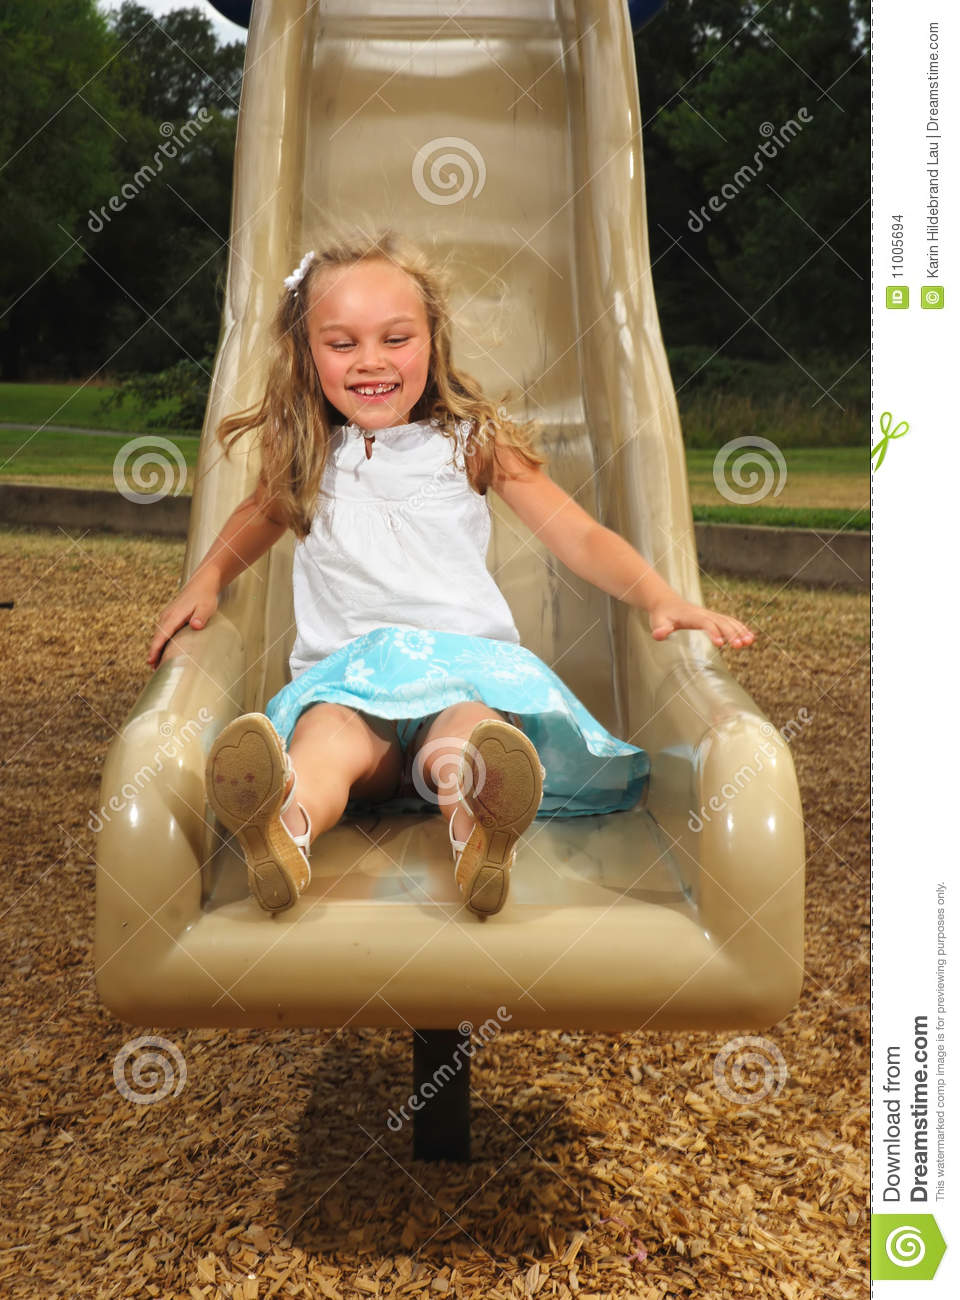 Oung girl sliding down a playground slide in summer.